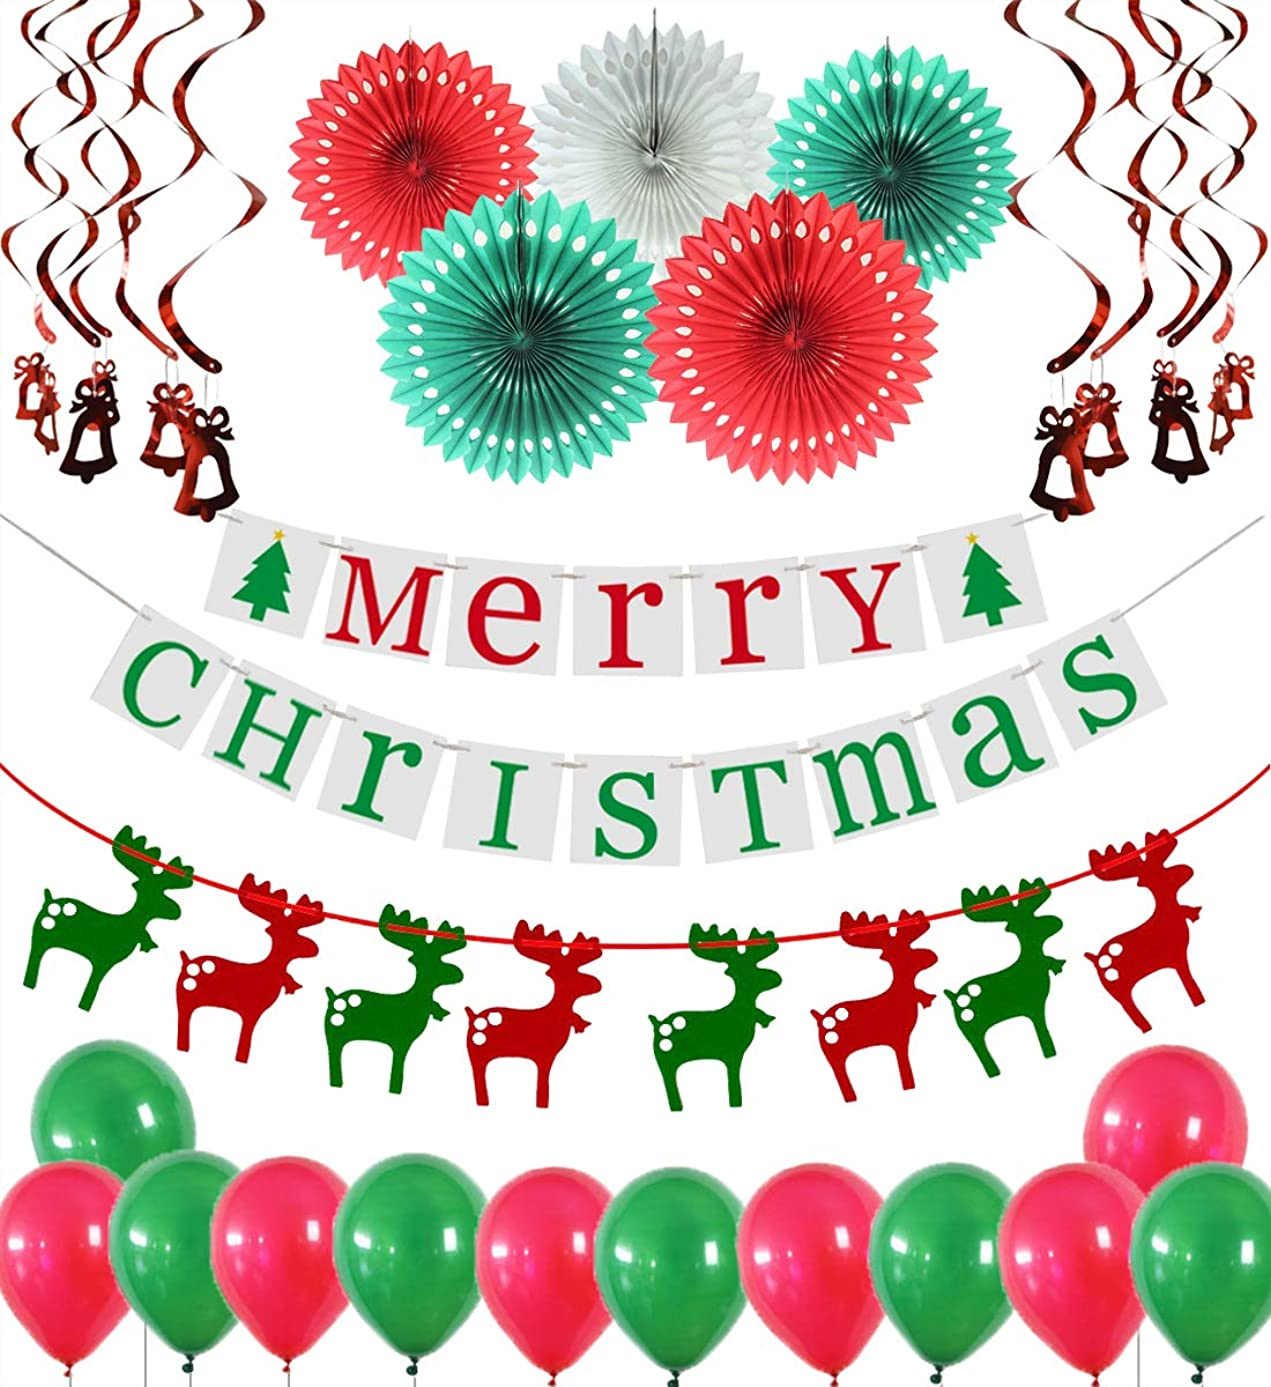 Merry Christmas Decorations Banner Reindeer Bunting Hanging Snowflake Fans Bells Ornament Swirls Latex Balloons Holiday Party Supplies Home Wall